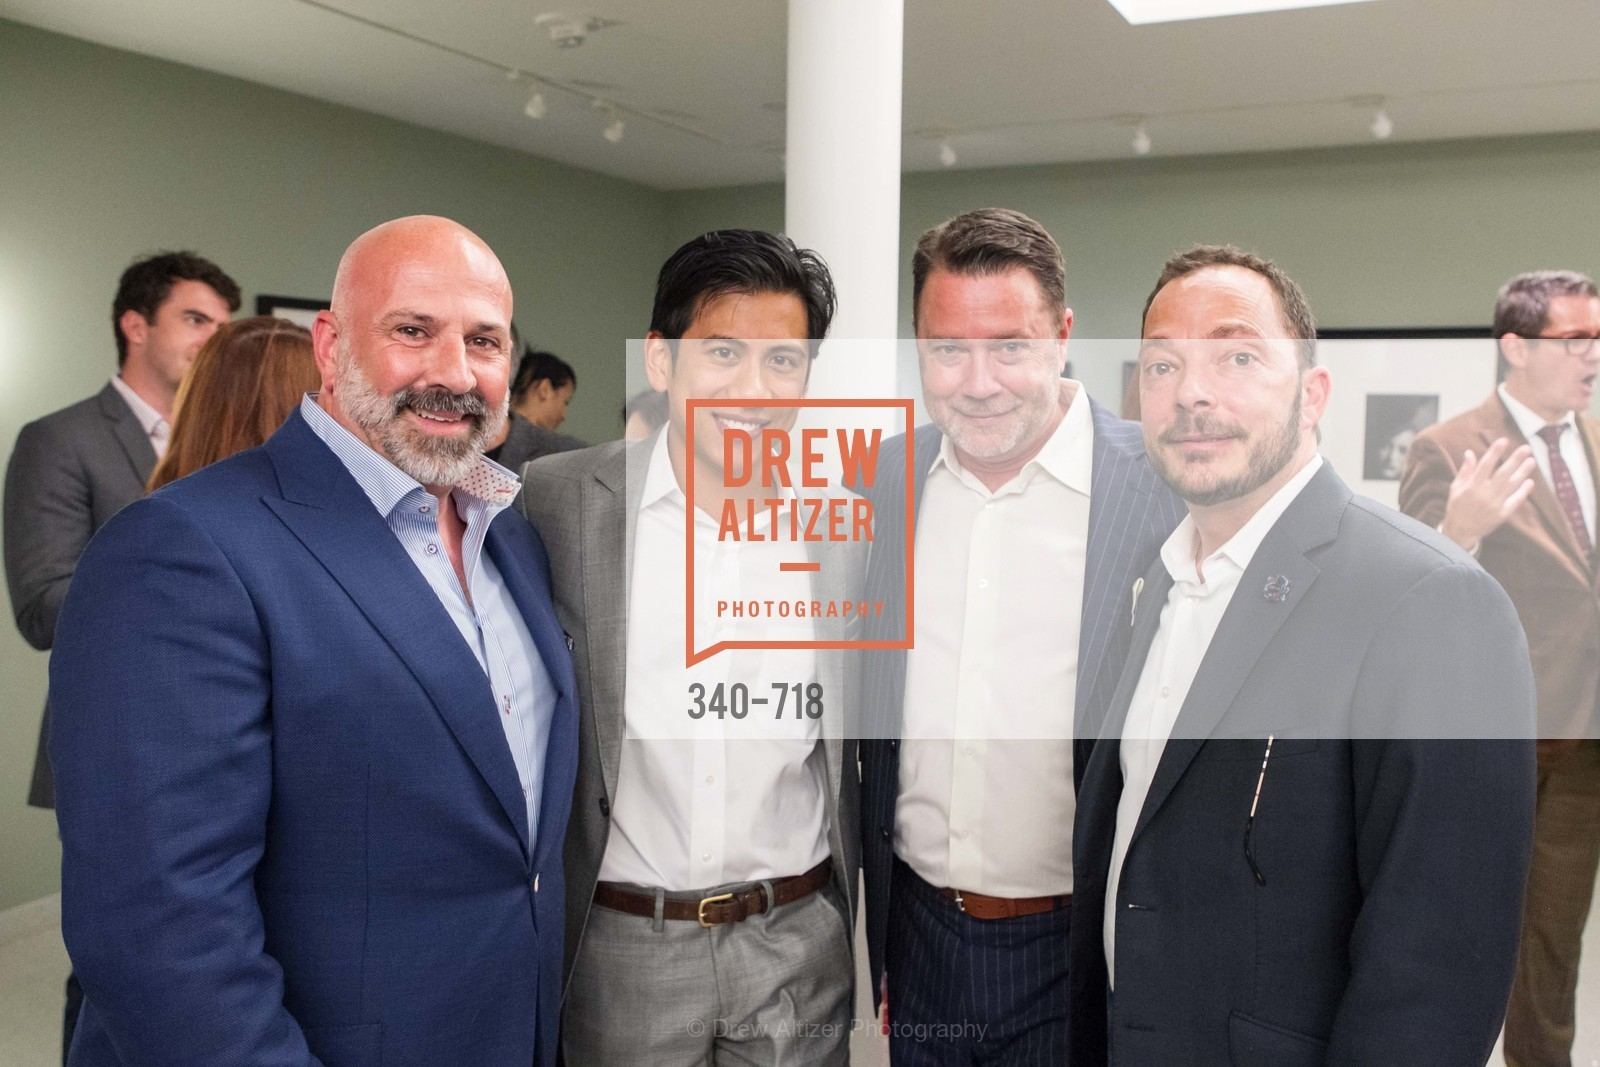 Geoffrey DeSousa, Alexander Bie, Jeff Holt, Peter West, ICAA Hosts NICKY HASLAM'S Lecture and Book Signing, US, May 11th, 2015,Drew Altizer, Drew Altizer Photography, full-service agency, private events, San Francisco photographer, photographer california